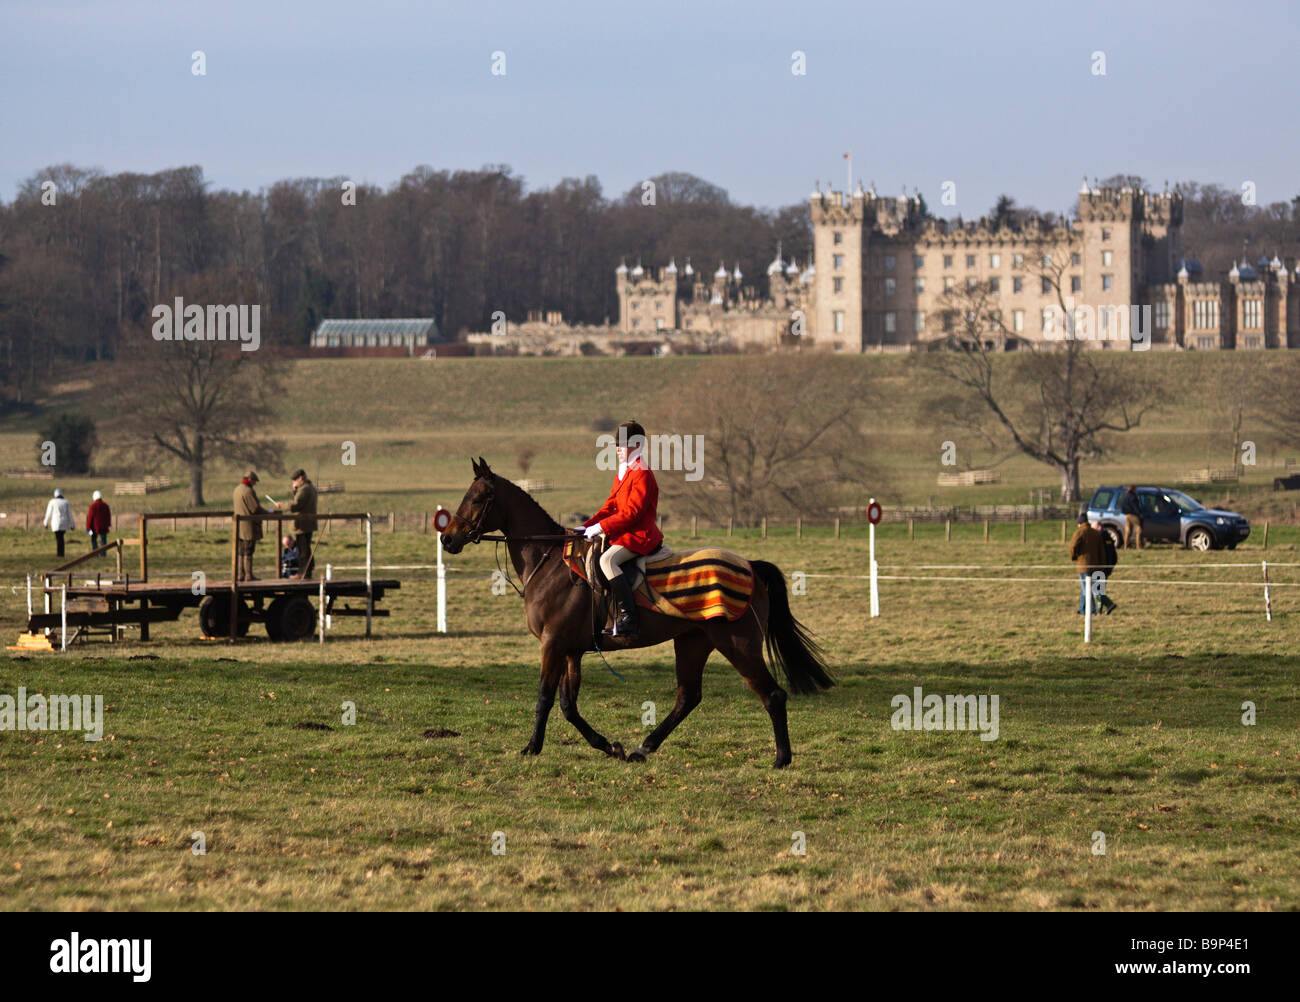 Master Of The Hunt Wearing Hunting Pink Red On Horseback With Floors Stock Photo Alamy